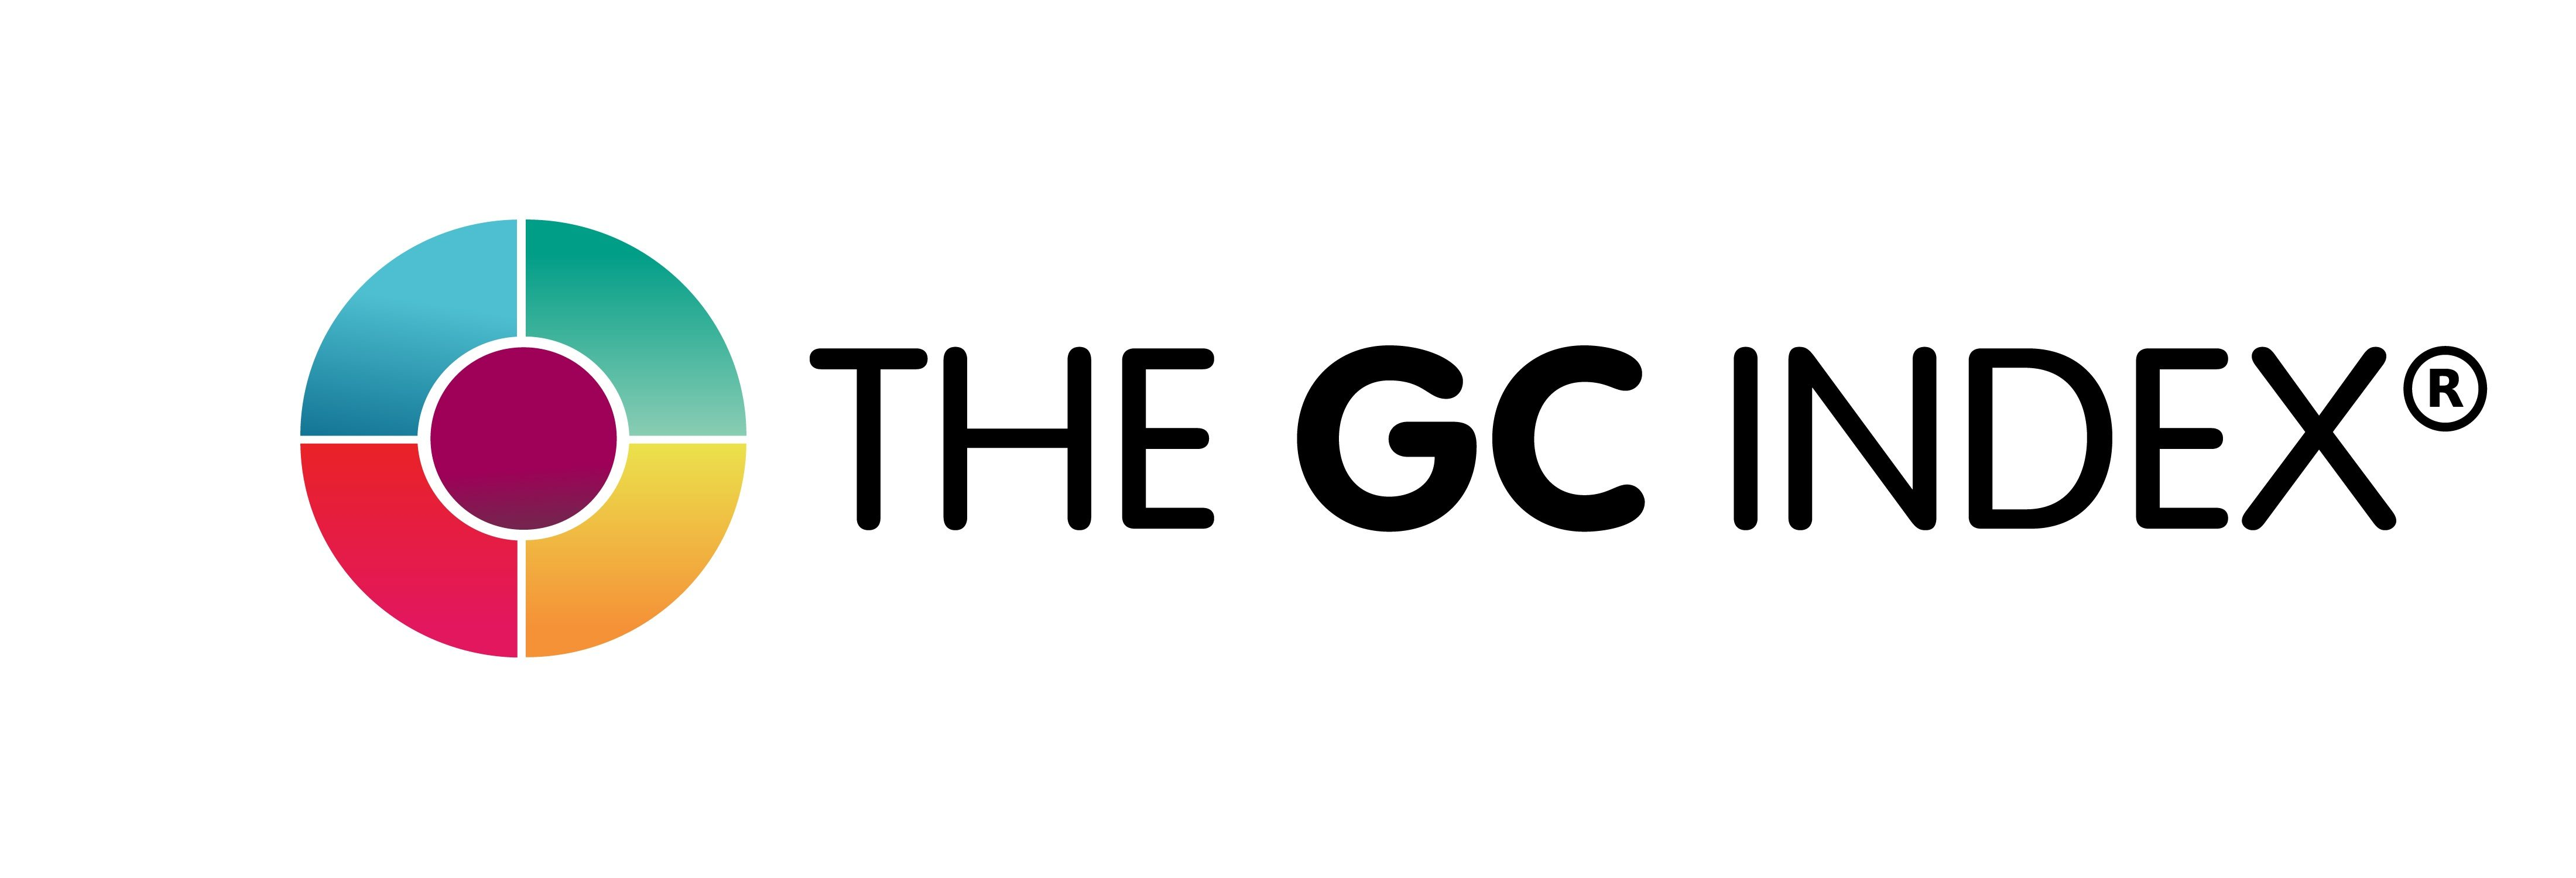 The GC Index helping individuals understand their impact and collaboration